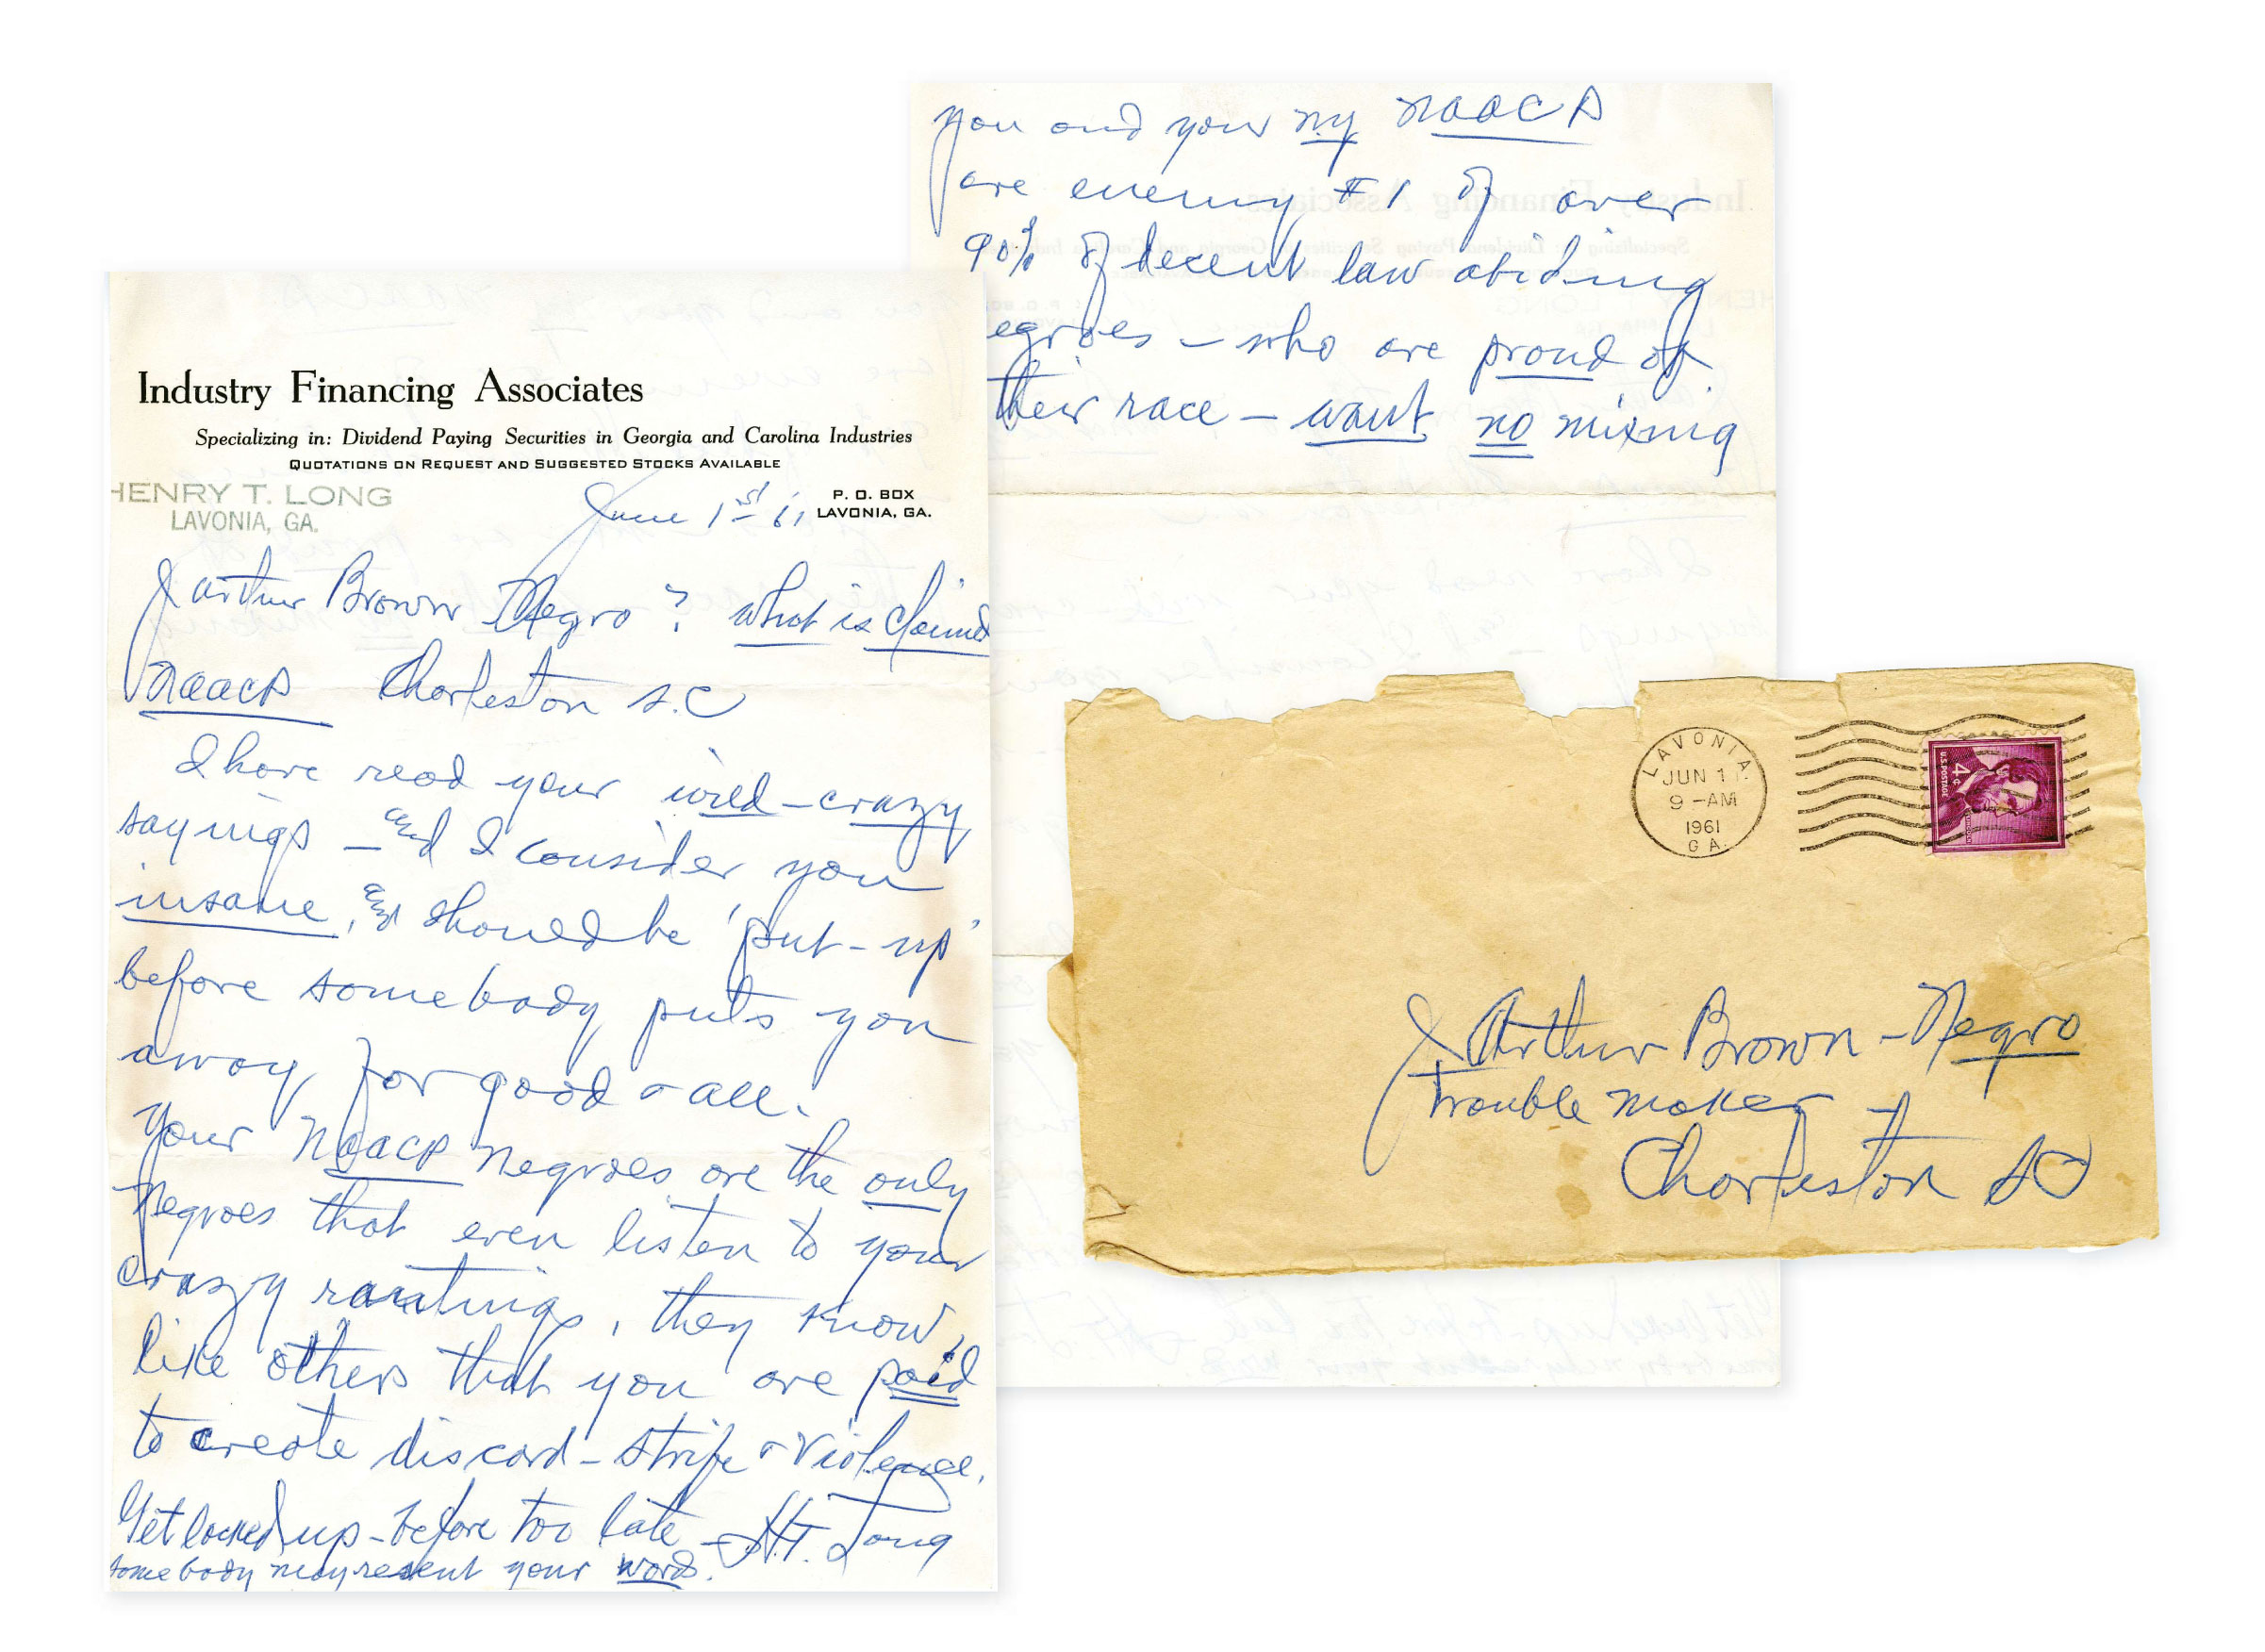 The J. Arthur Brown papers at the Avery Research Center reveal how the family was on the front line of local civil rights battles, and often on the receiving end of hateful tirades.